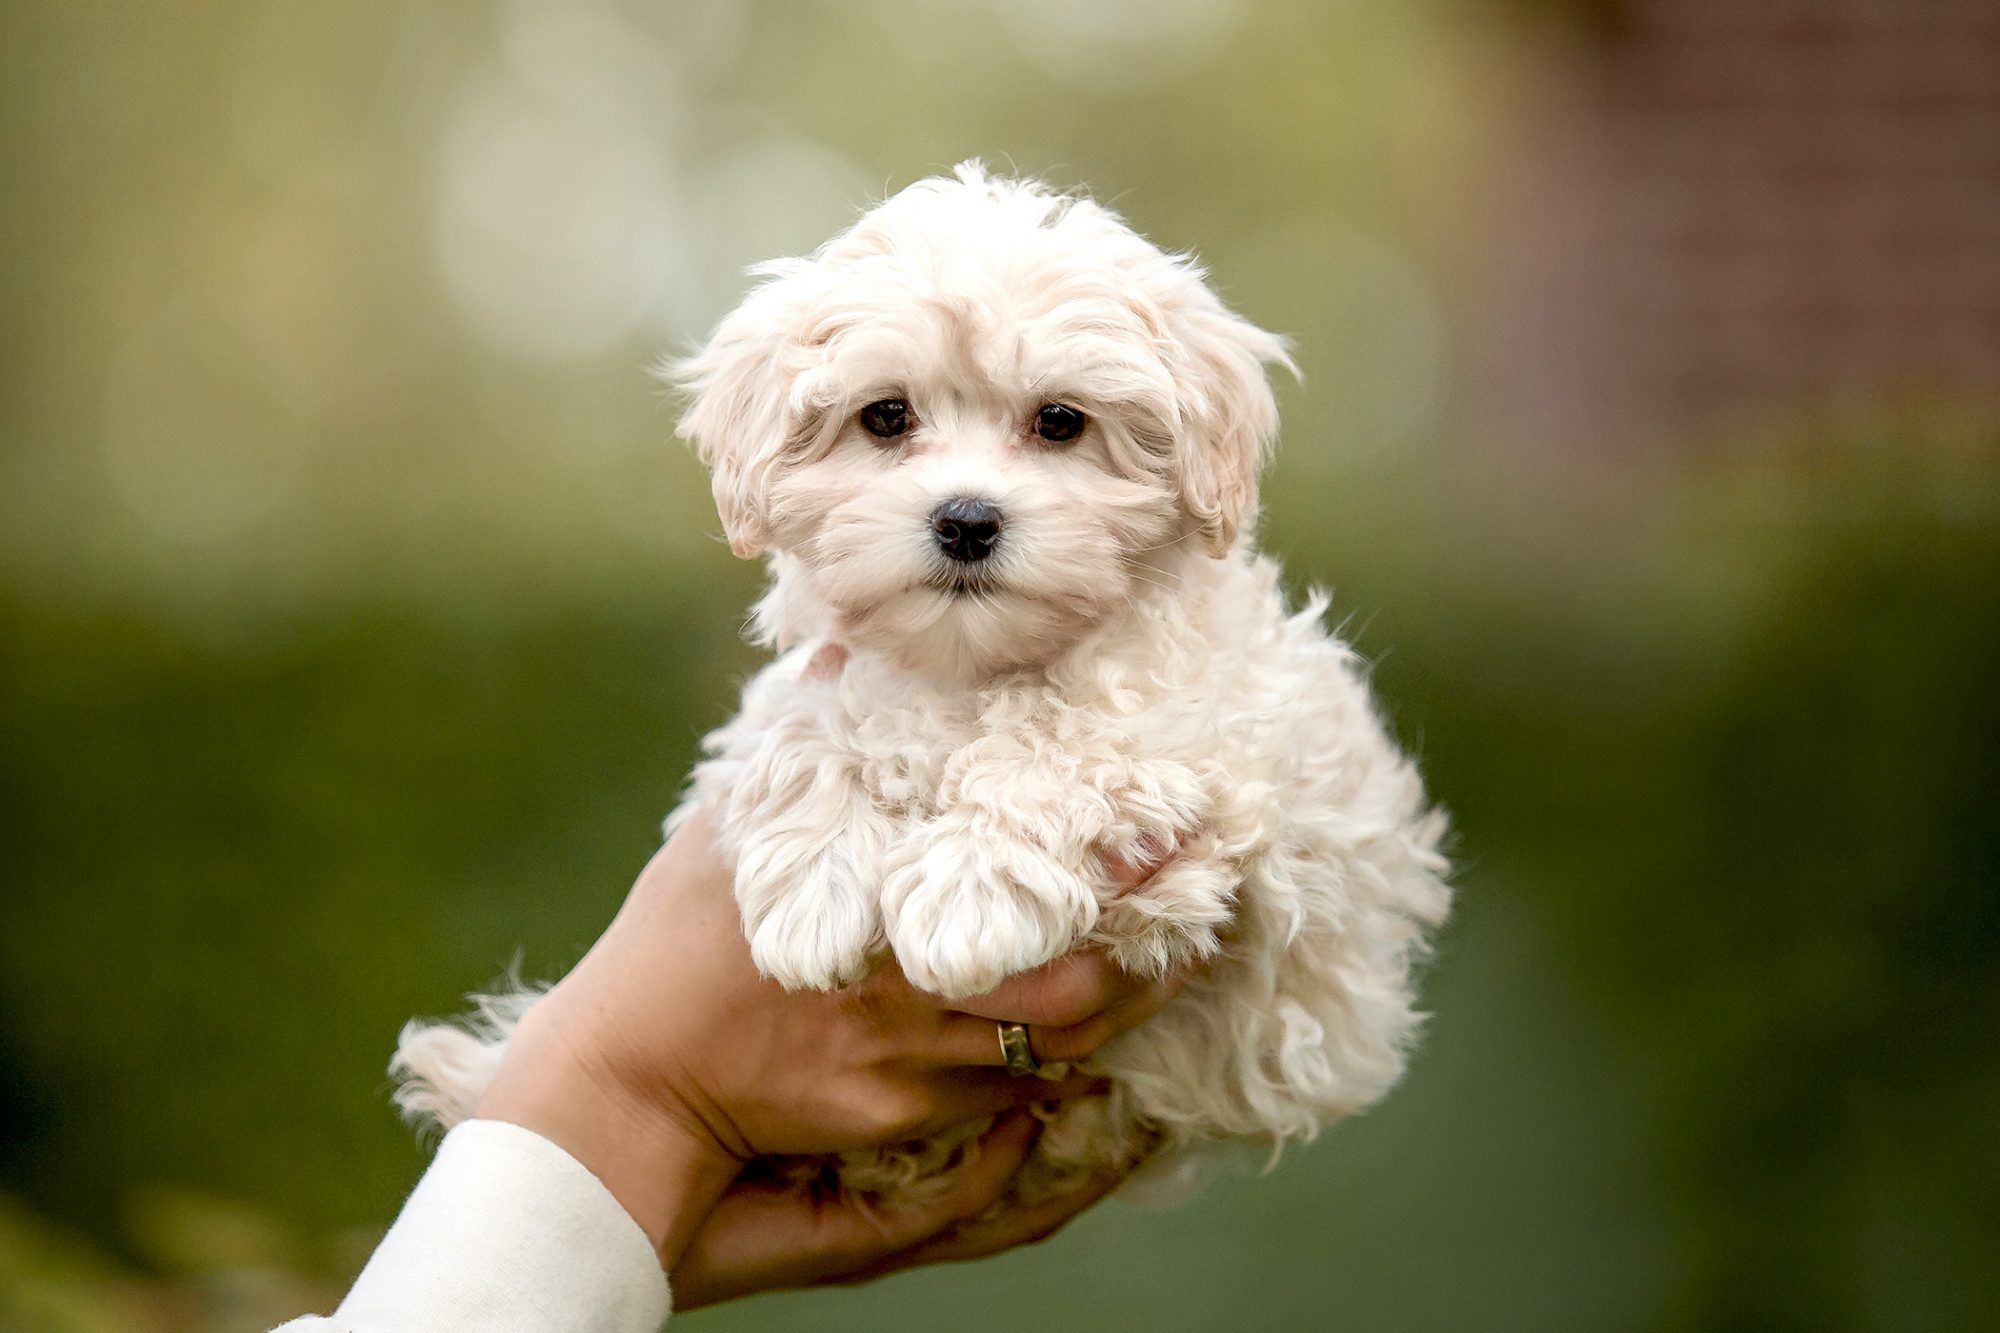 white blonde maltipoo puppy hed in person's two hands